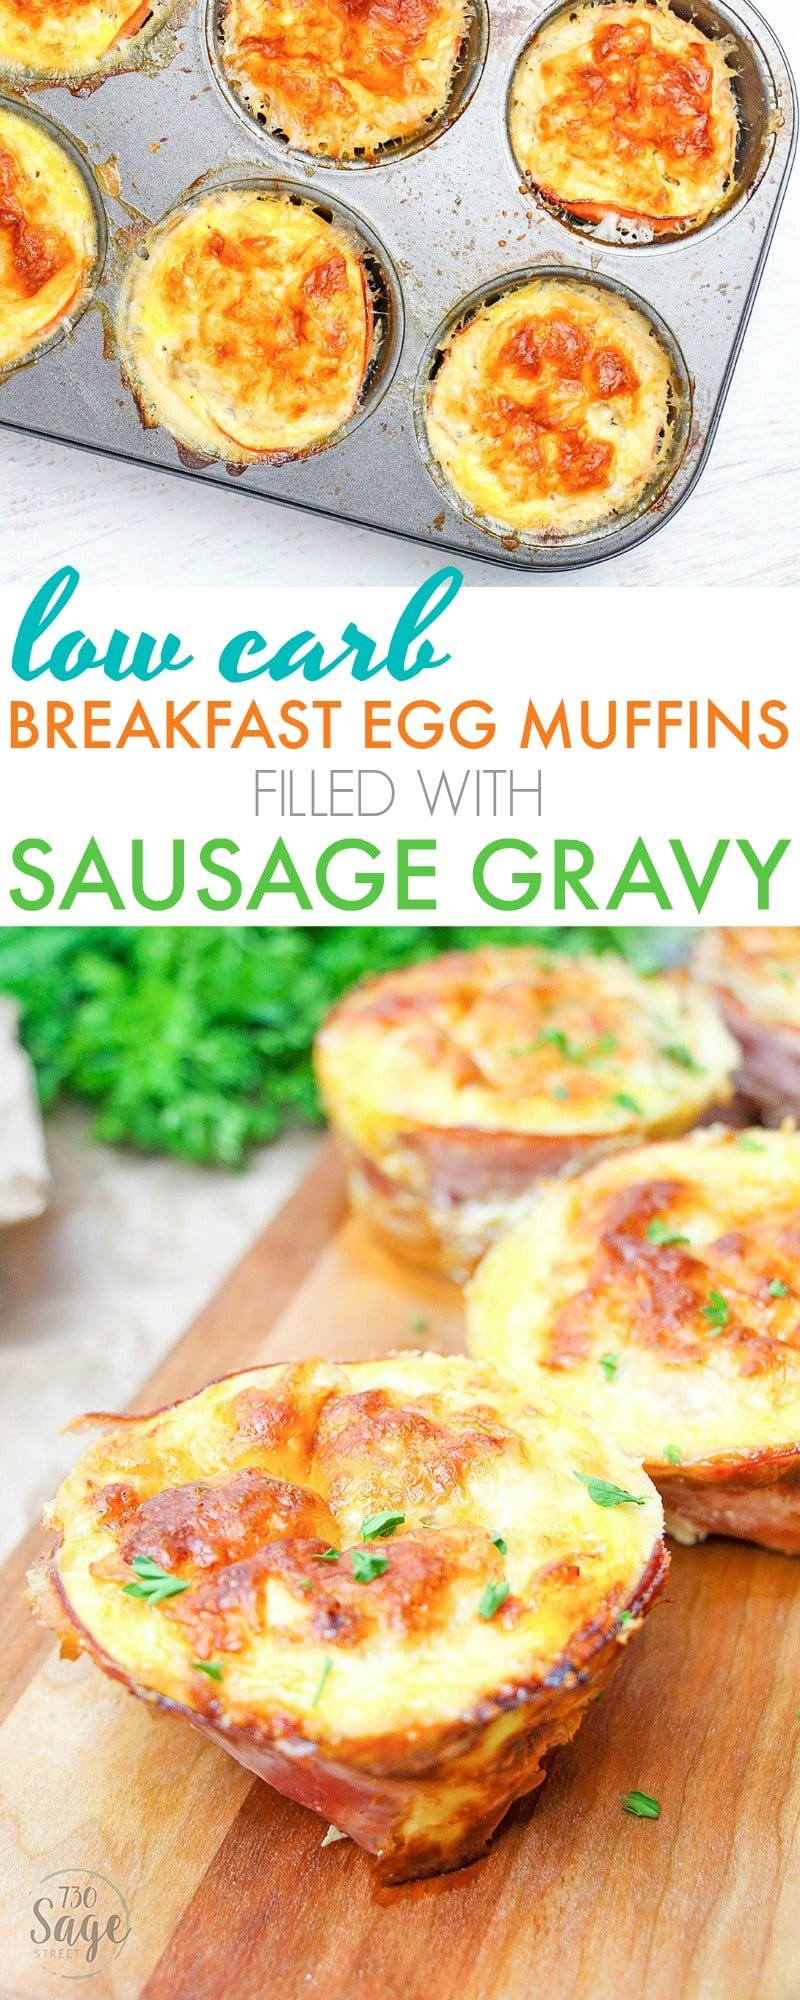 Low Carb Egg Muffin Recipes  Low Carb Breakfast Egg Muffins Filled with Sausage Gravy